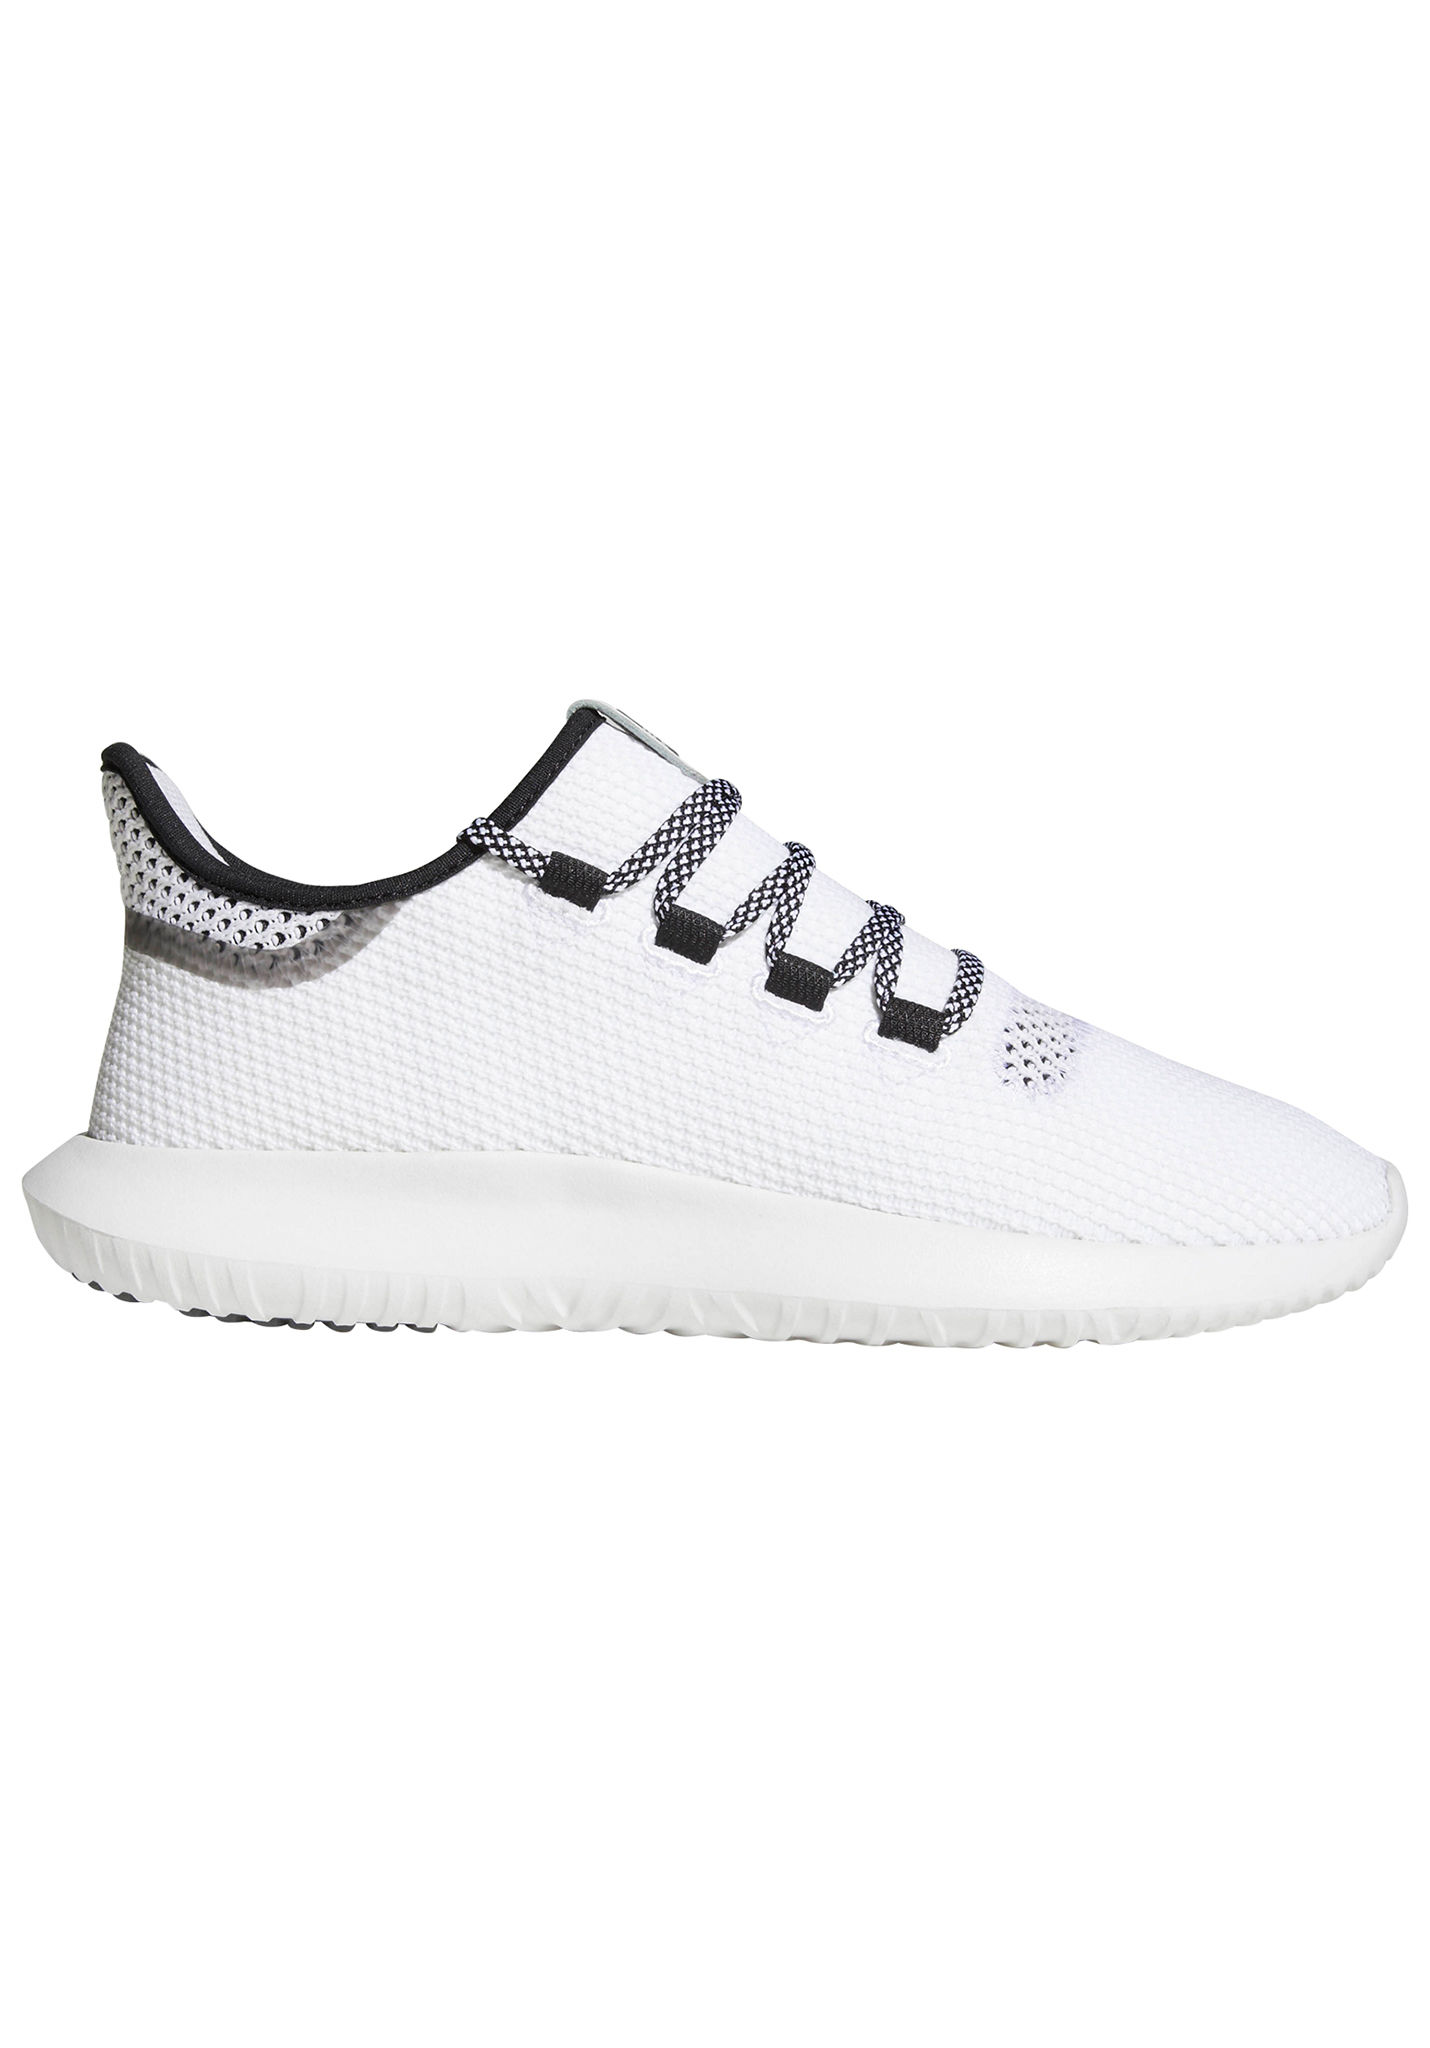 new arrival ac28c fabf8 ADIDAS ORIGINALS Tubular Shadow Ck - Sneakers for Men - White - Planet  Sports